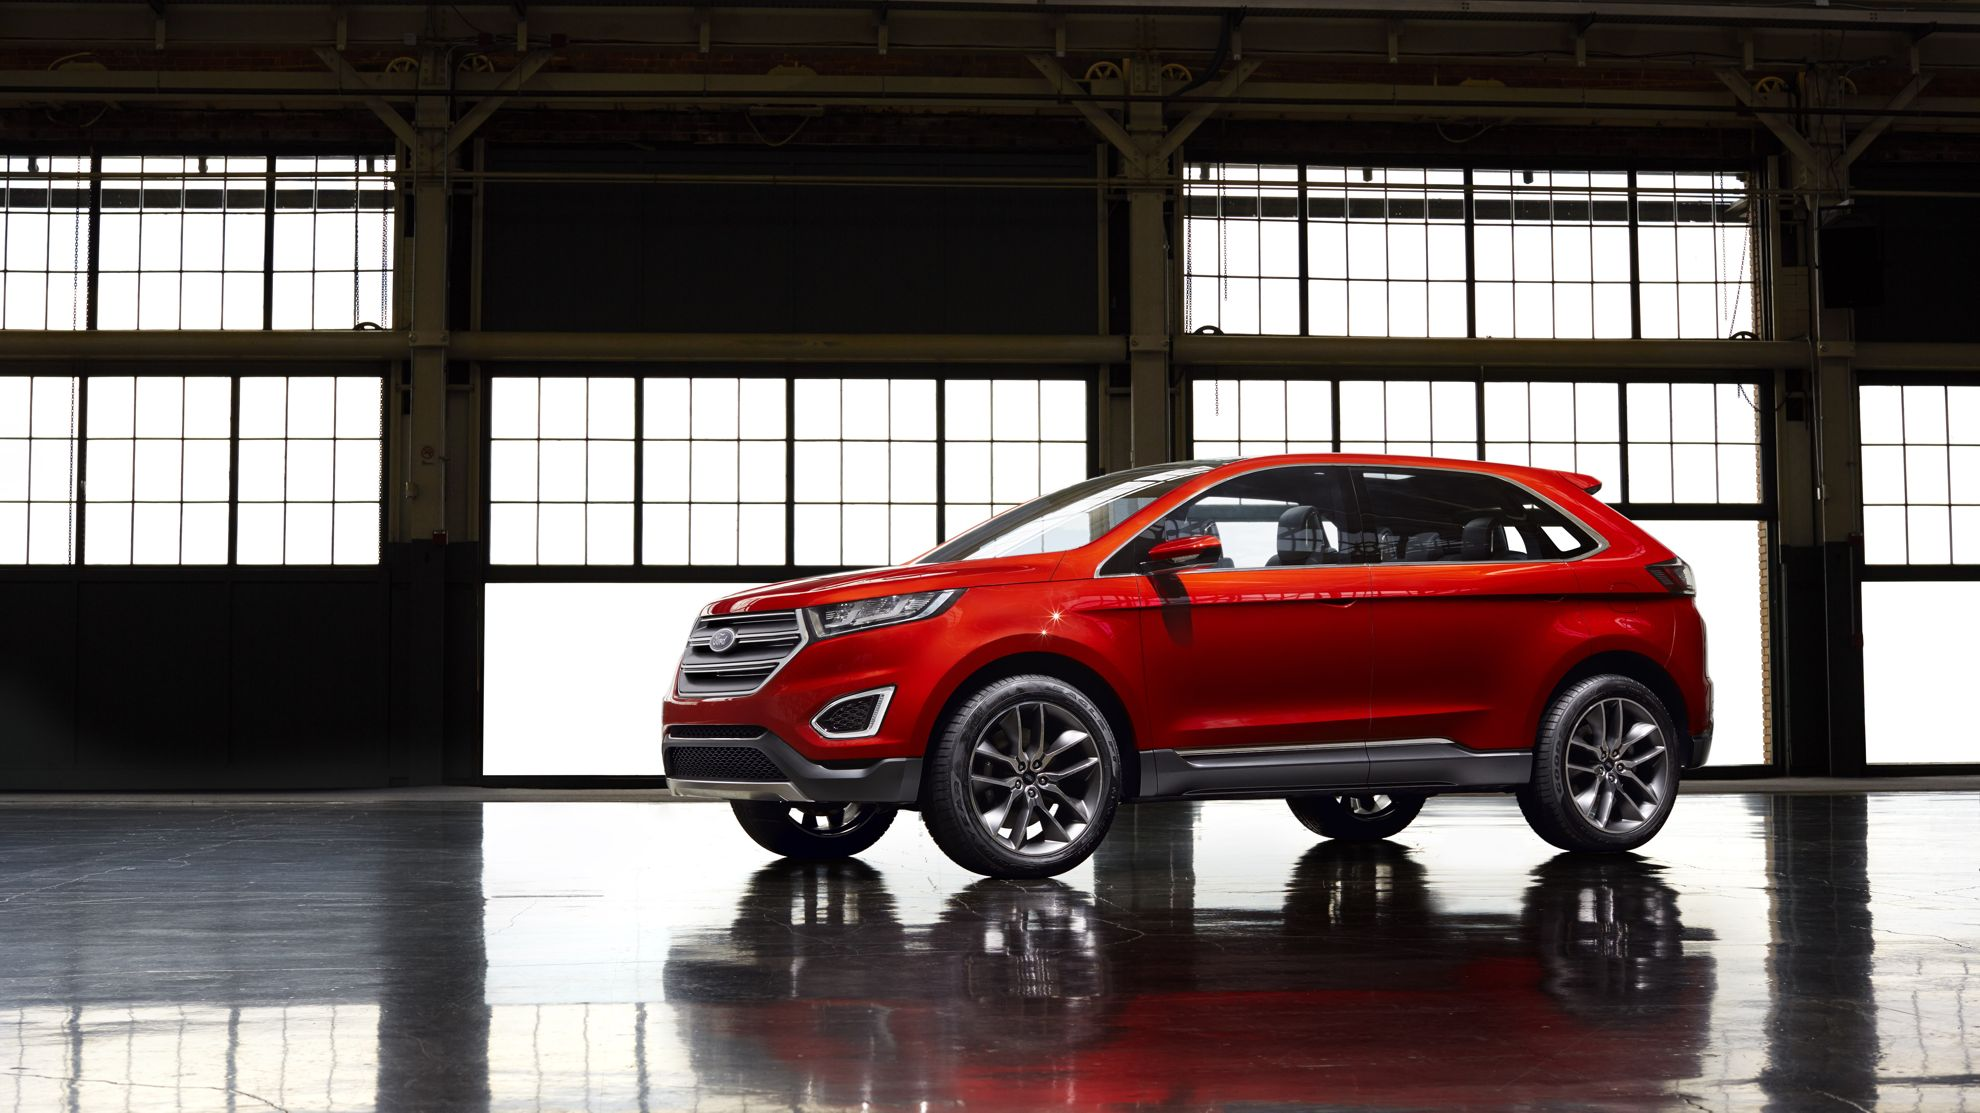 Ford Of Canadas Oakville Assembly Plant Will Build The All New Ford Edge Global Utility Vehicle Shipping It From Canada To More Than  Countries As